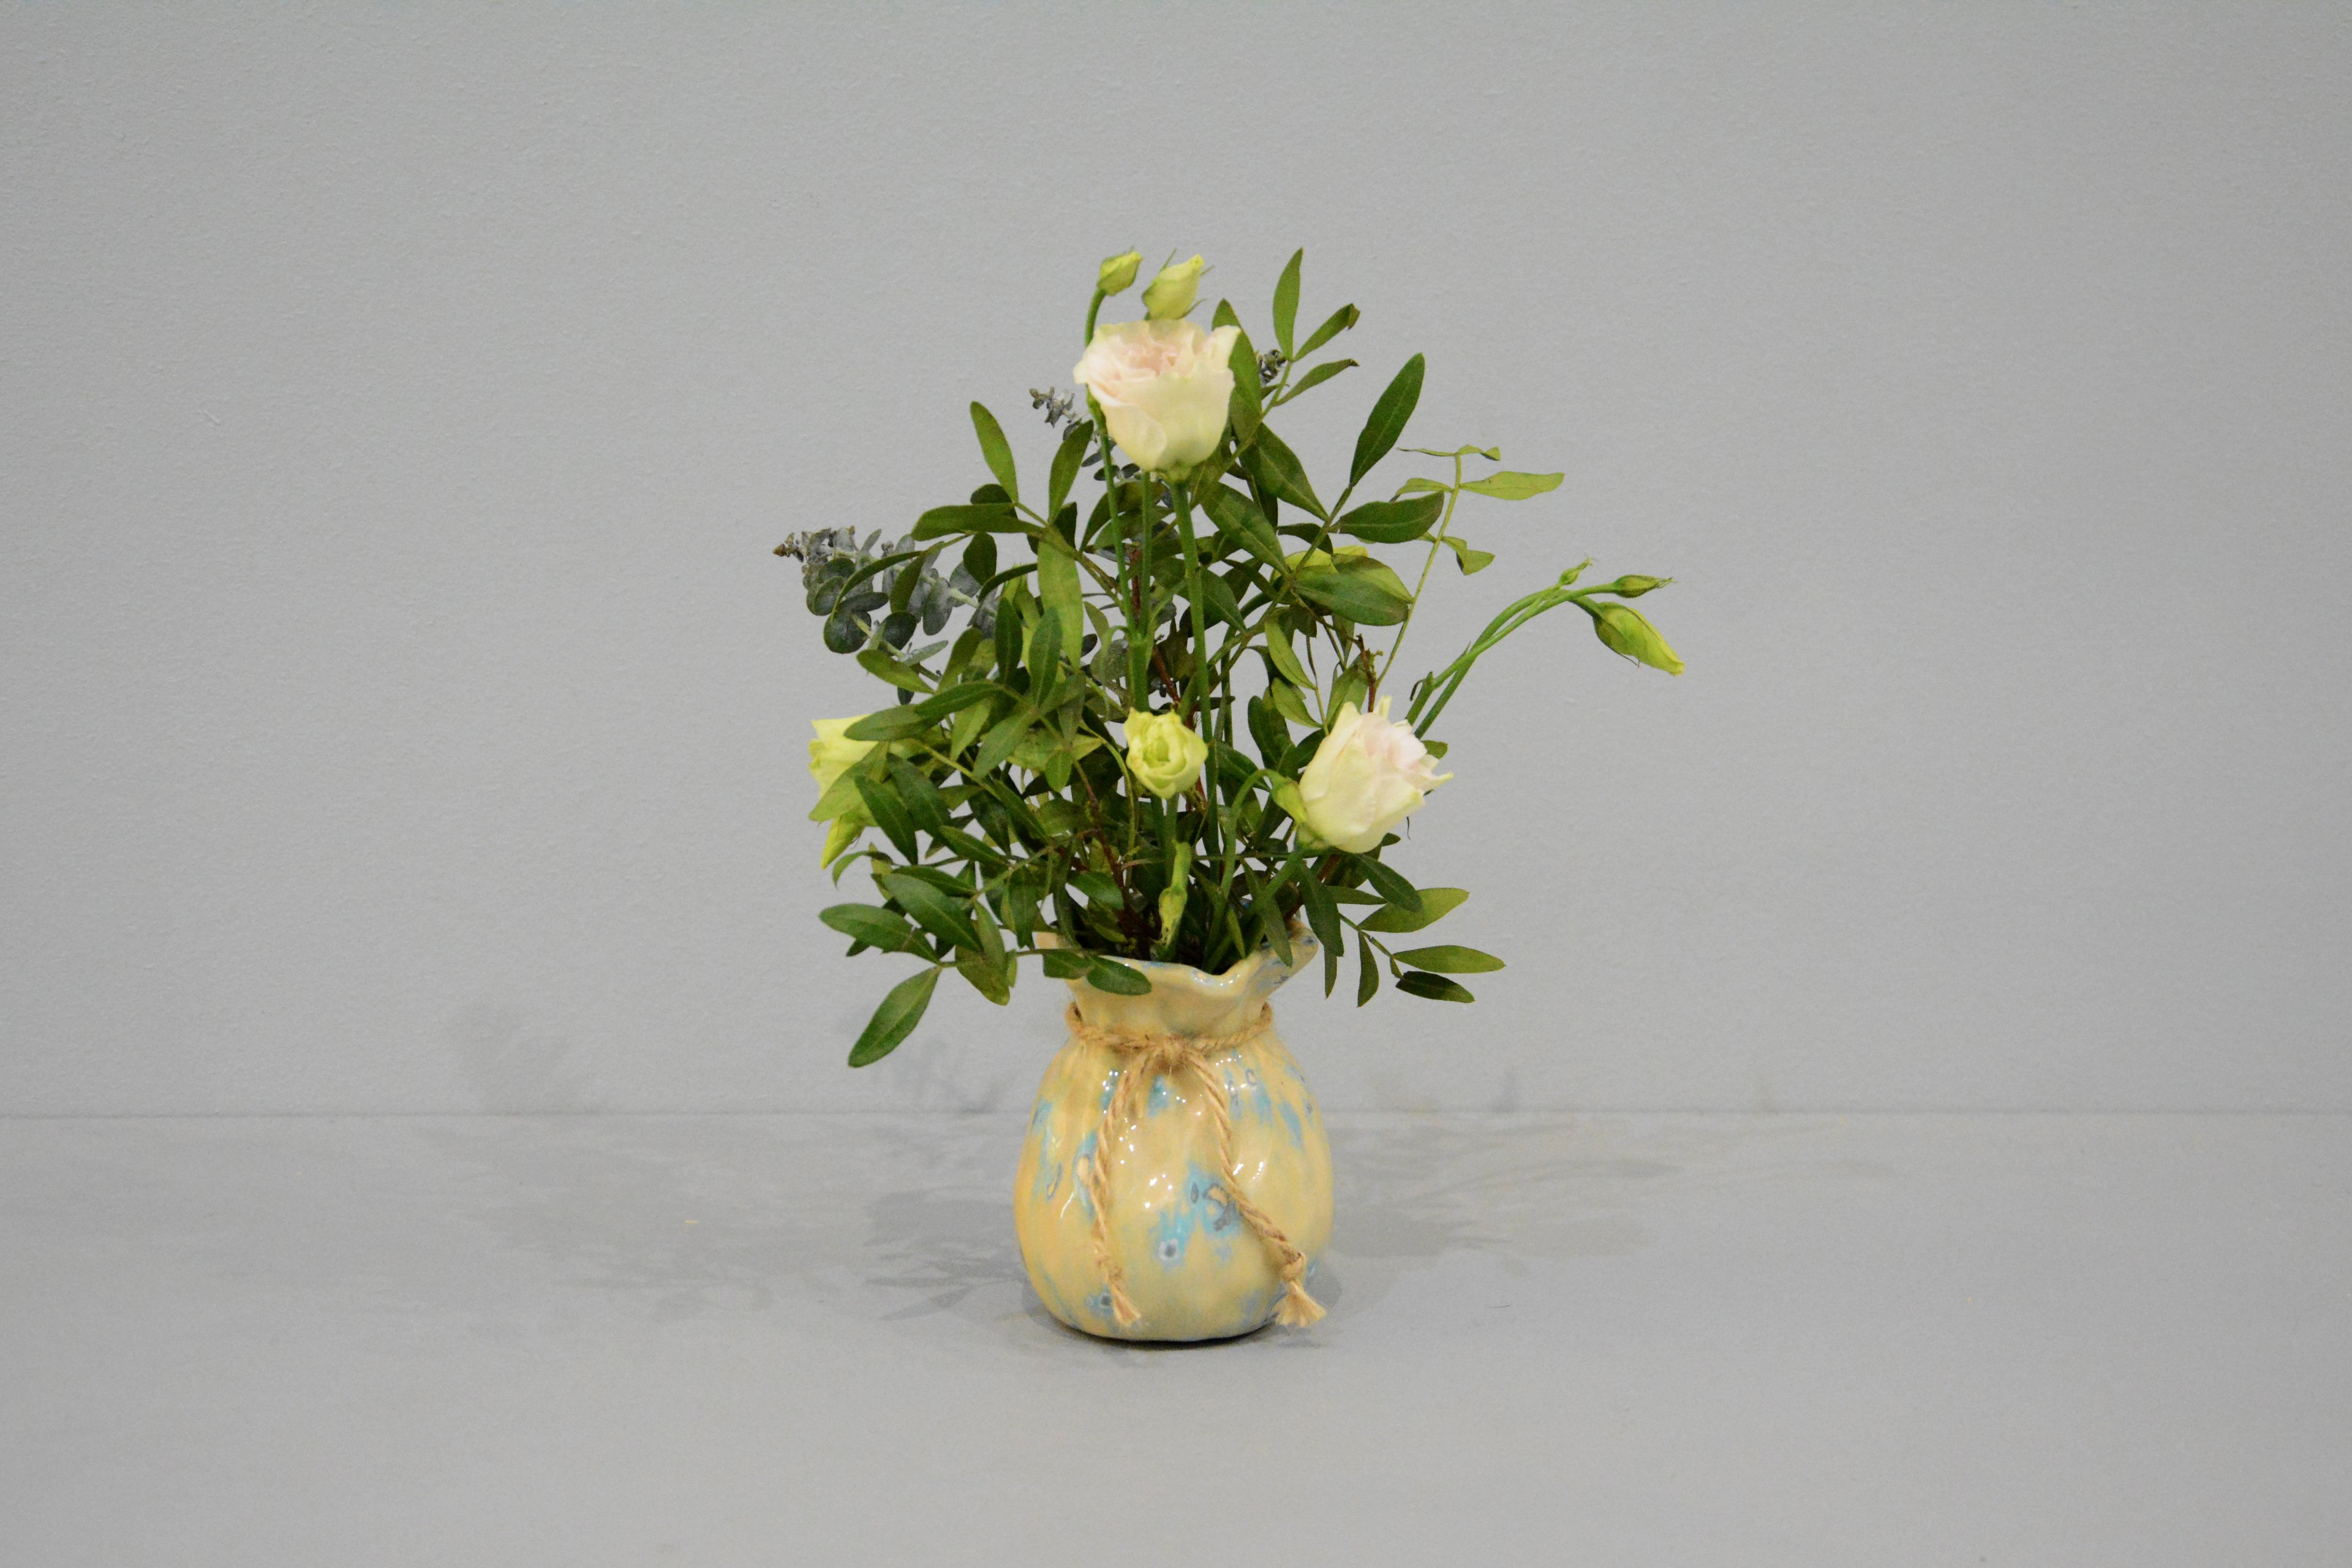 Candle vase «Beige Bagful», height - 9 cm, color - beige. Photo 1413.